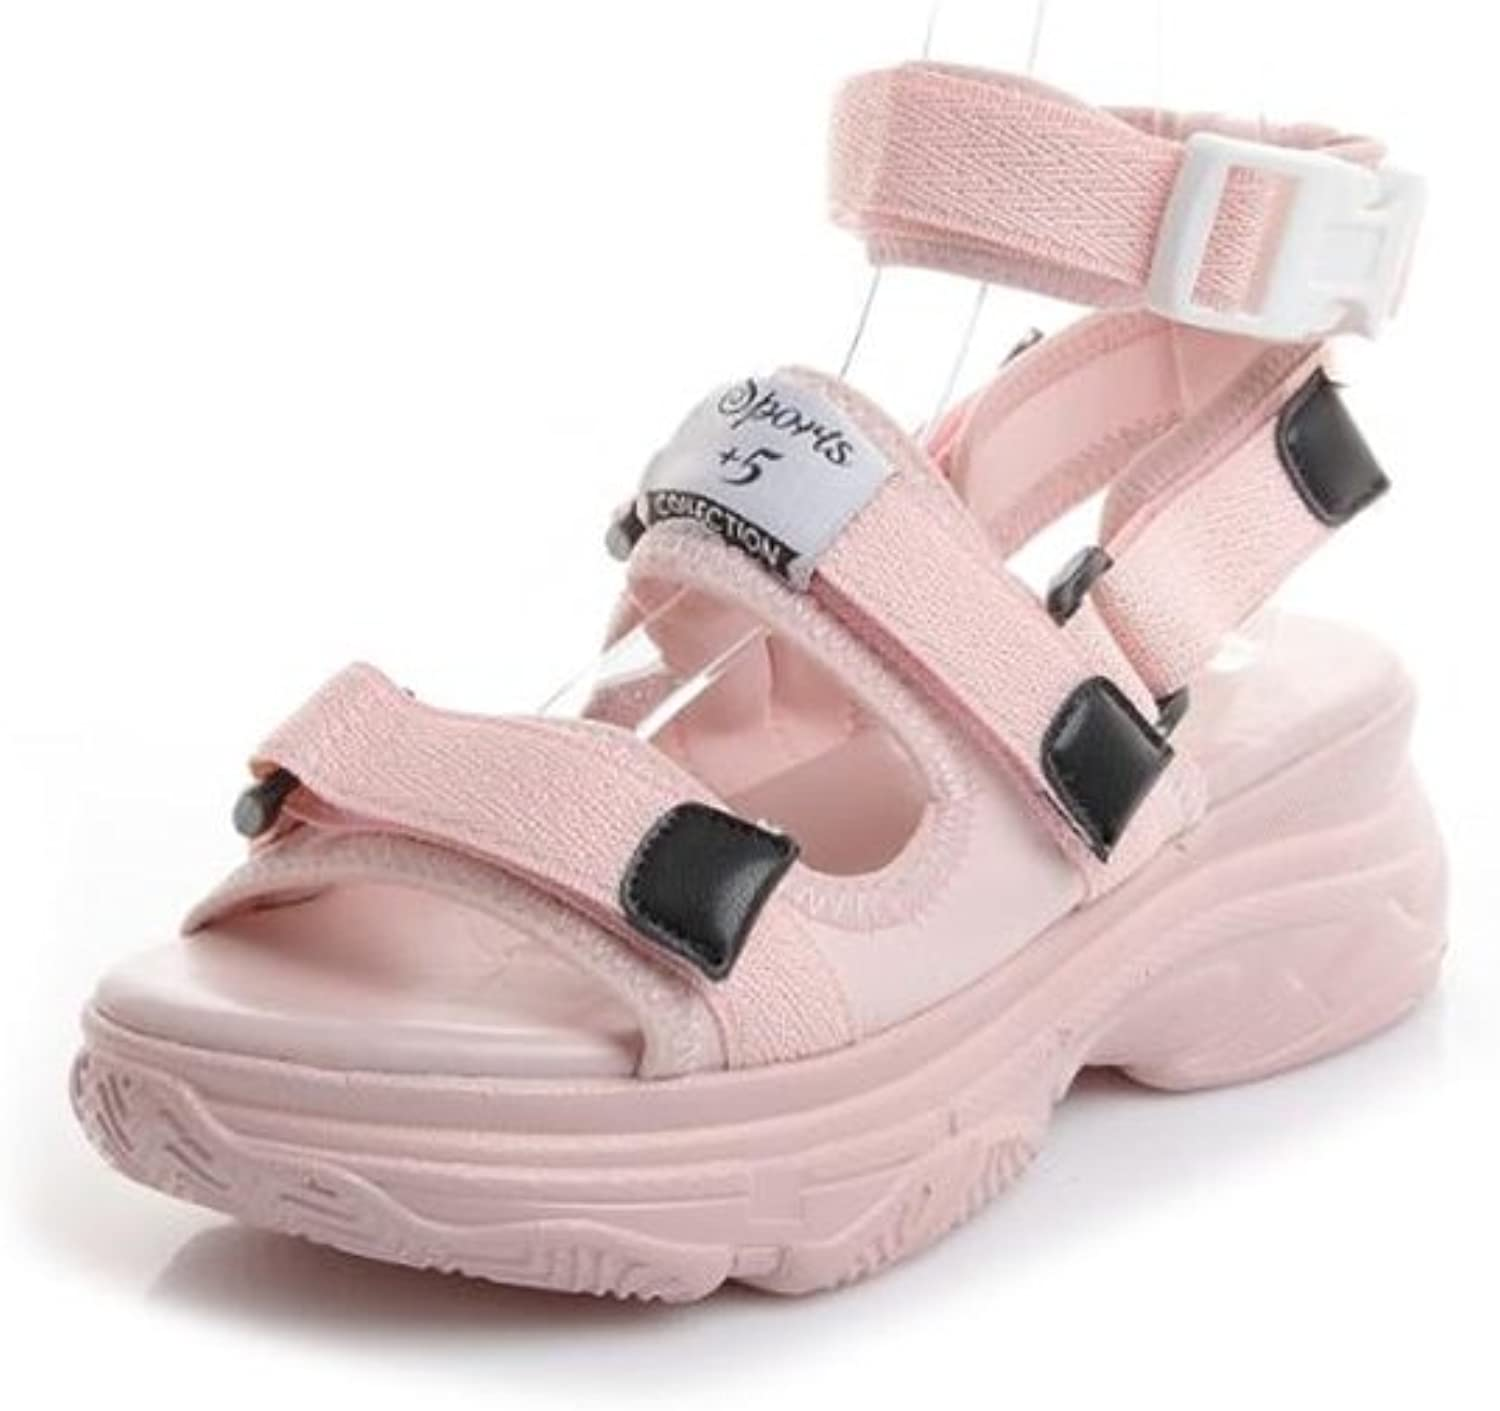 Women's Comfort Open Toe Wedge Sandal Platform shoes with Ankle Strap